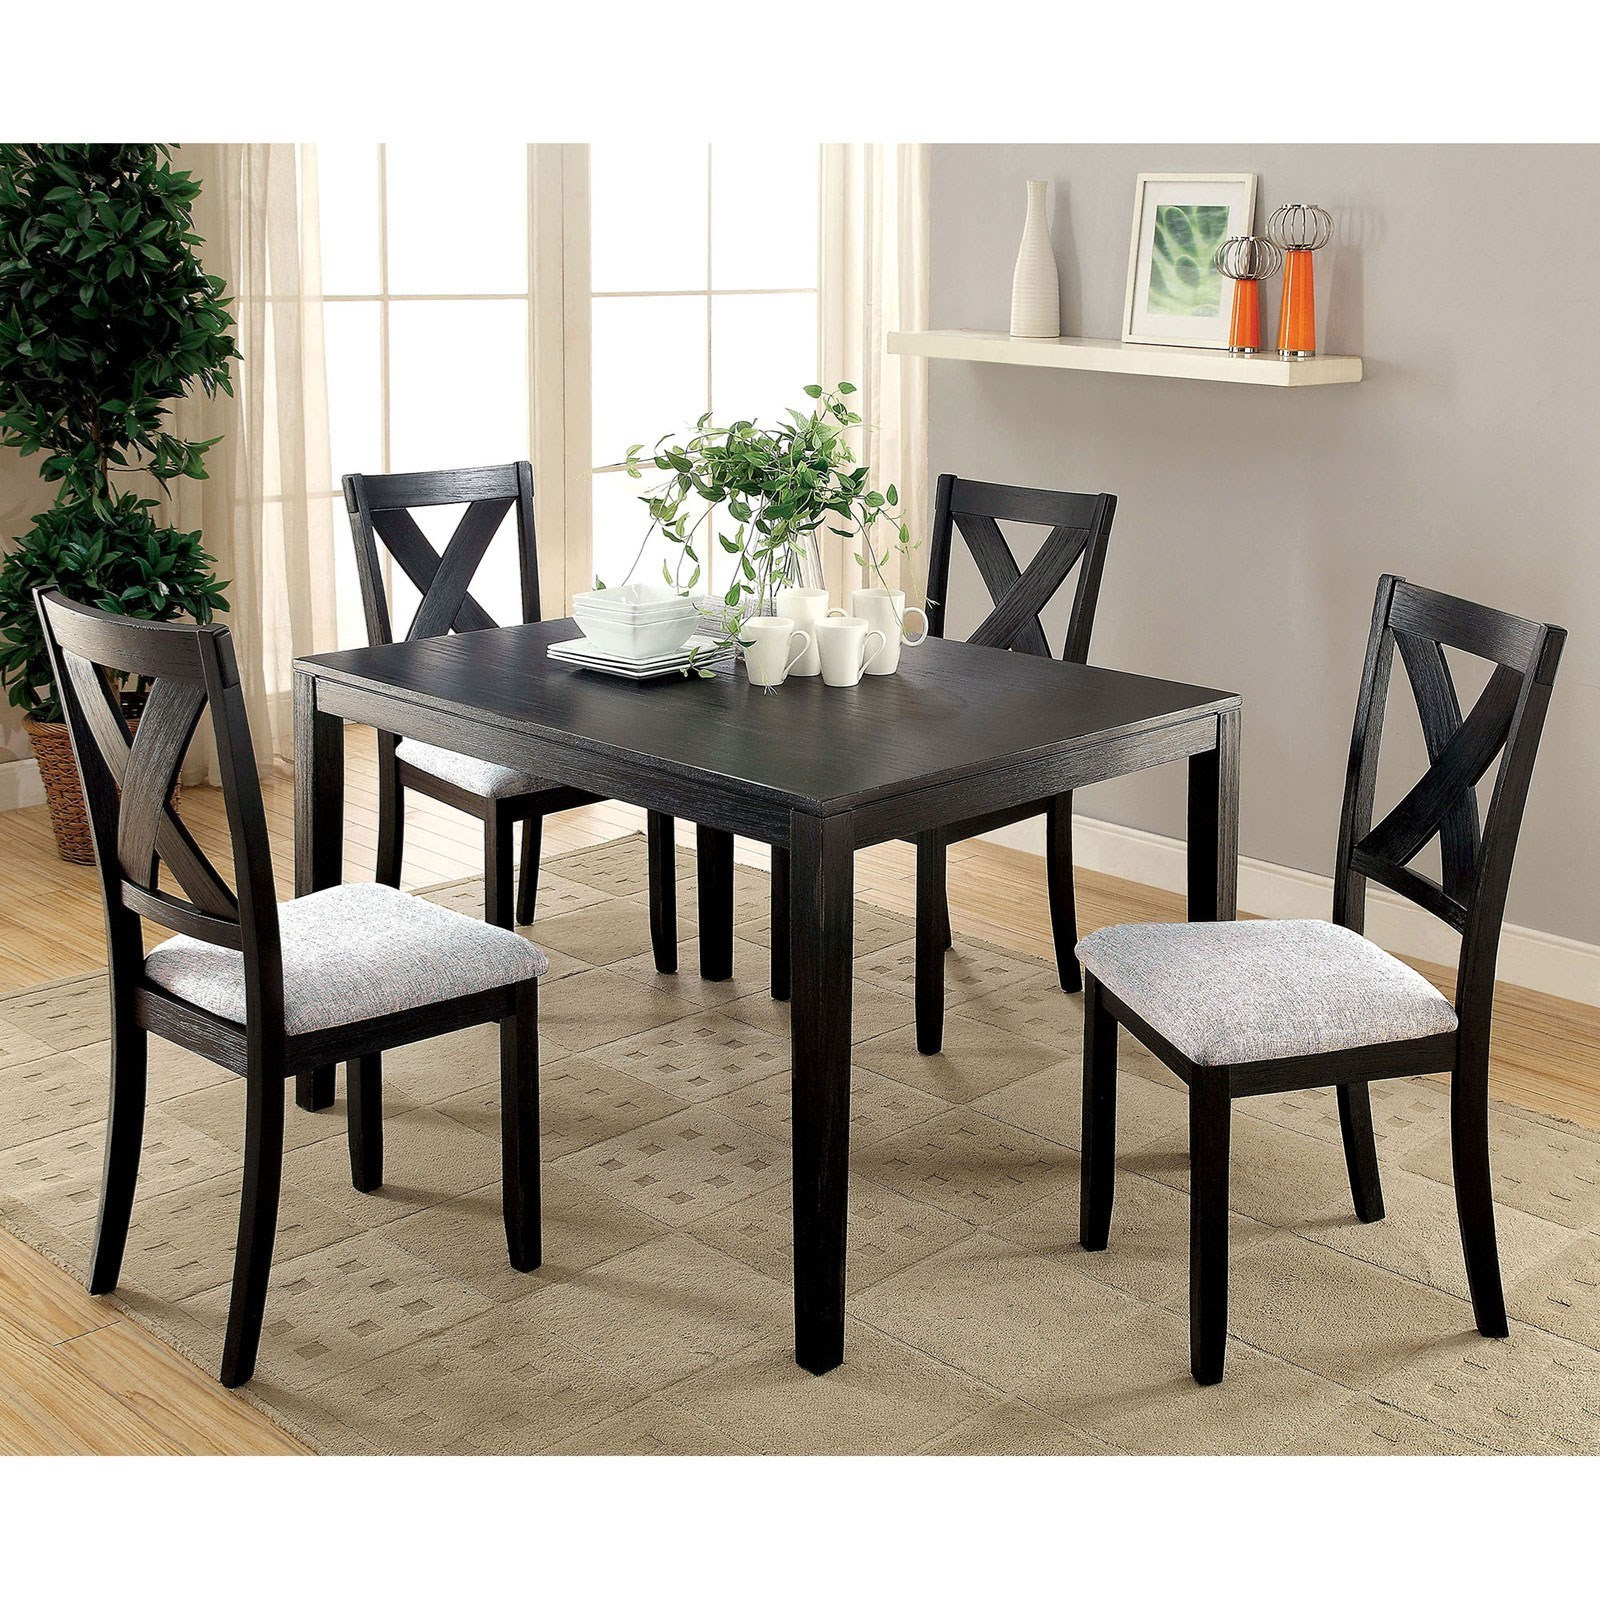 5 Piece Dining Sets Pertaining To Fashionable Furniture Of America Glenham 5 Piece Dining Table Set (View 3 of 25)